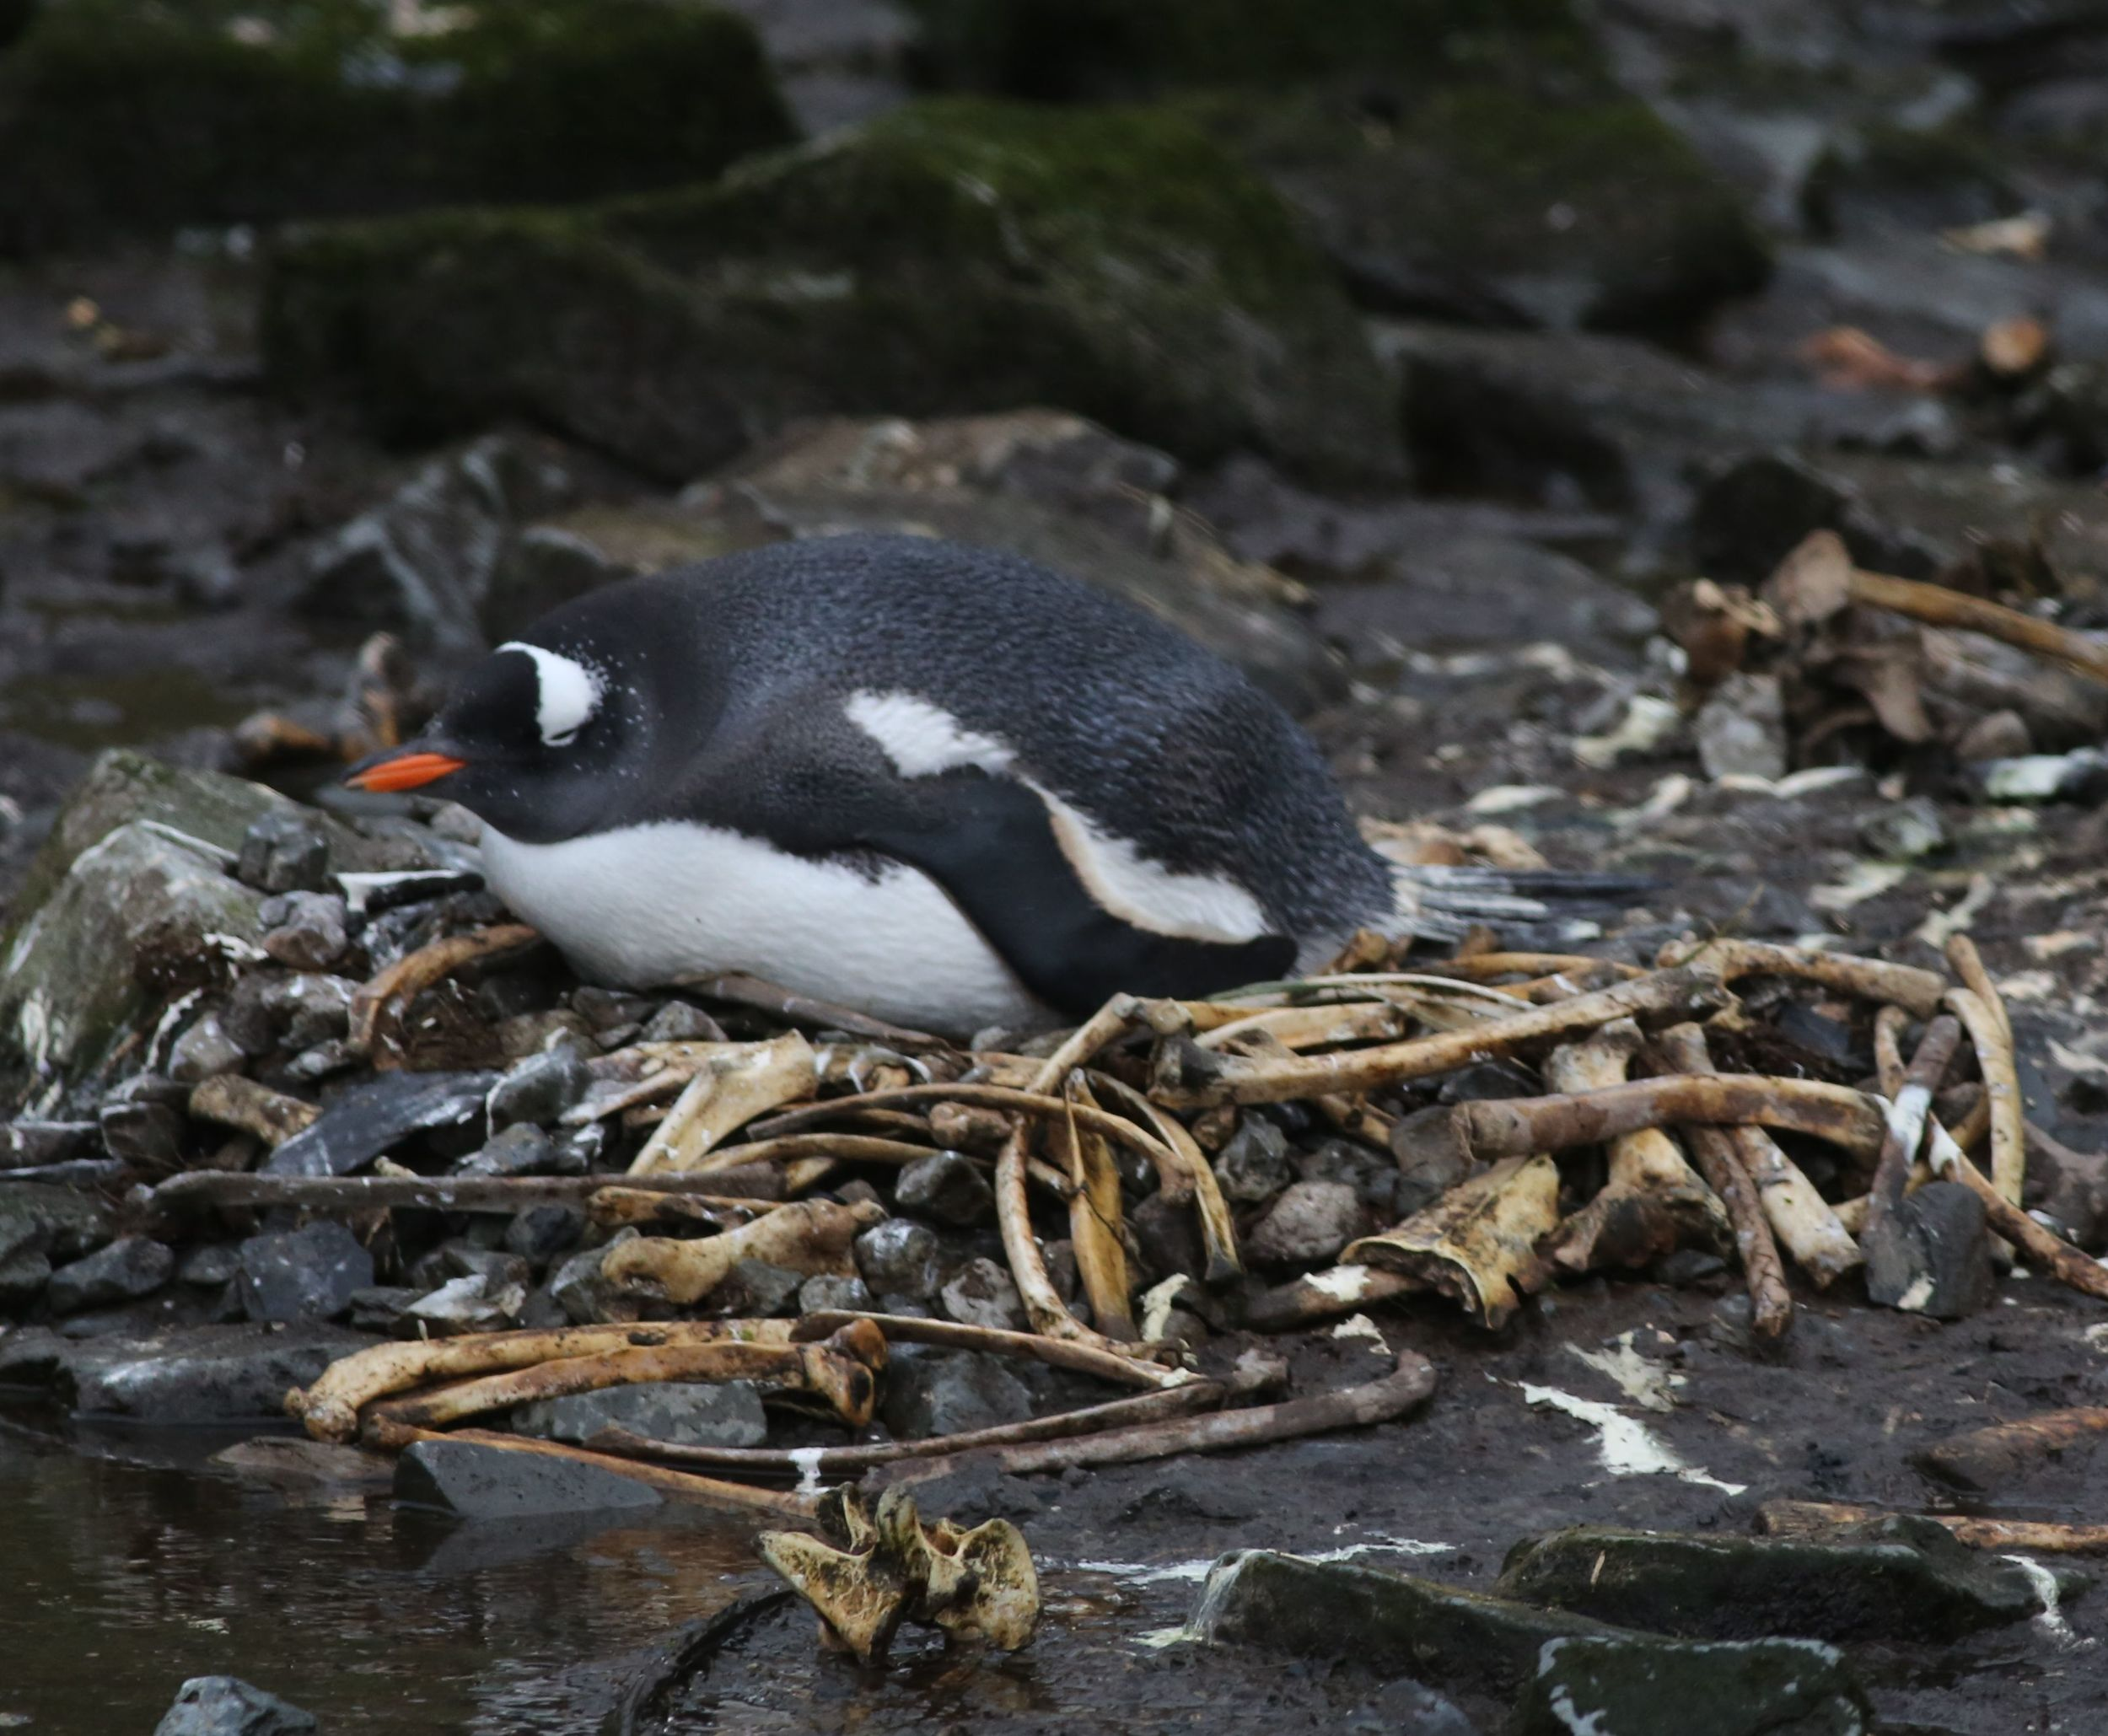 Yes, this gentoo's nest was made mostly of bones. Cue the horror music!